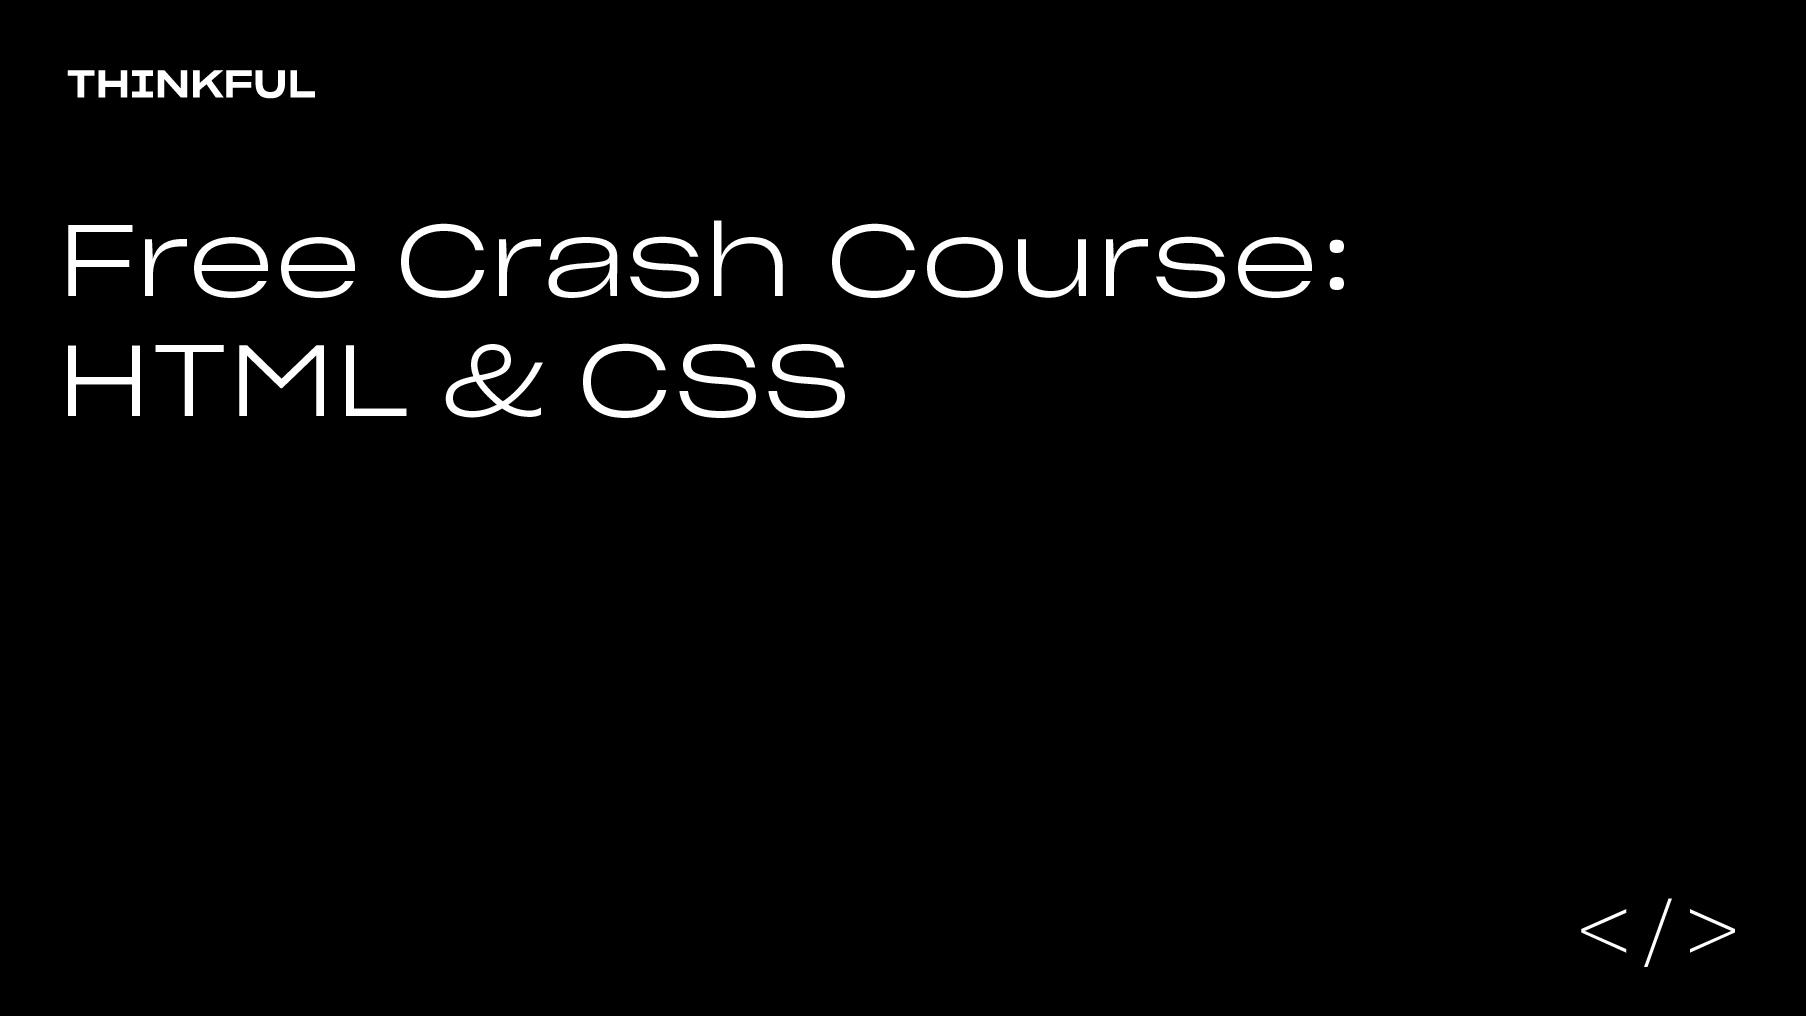 Thinkful Webinar | Free Crash Course: HTML & CSS